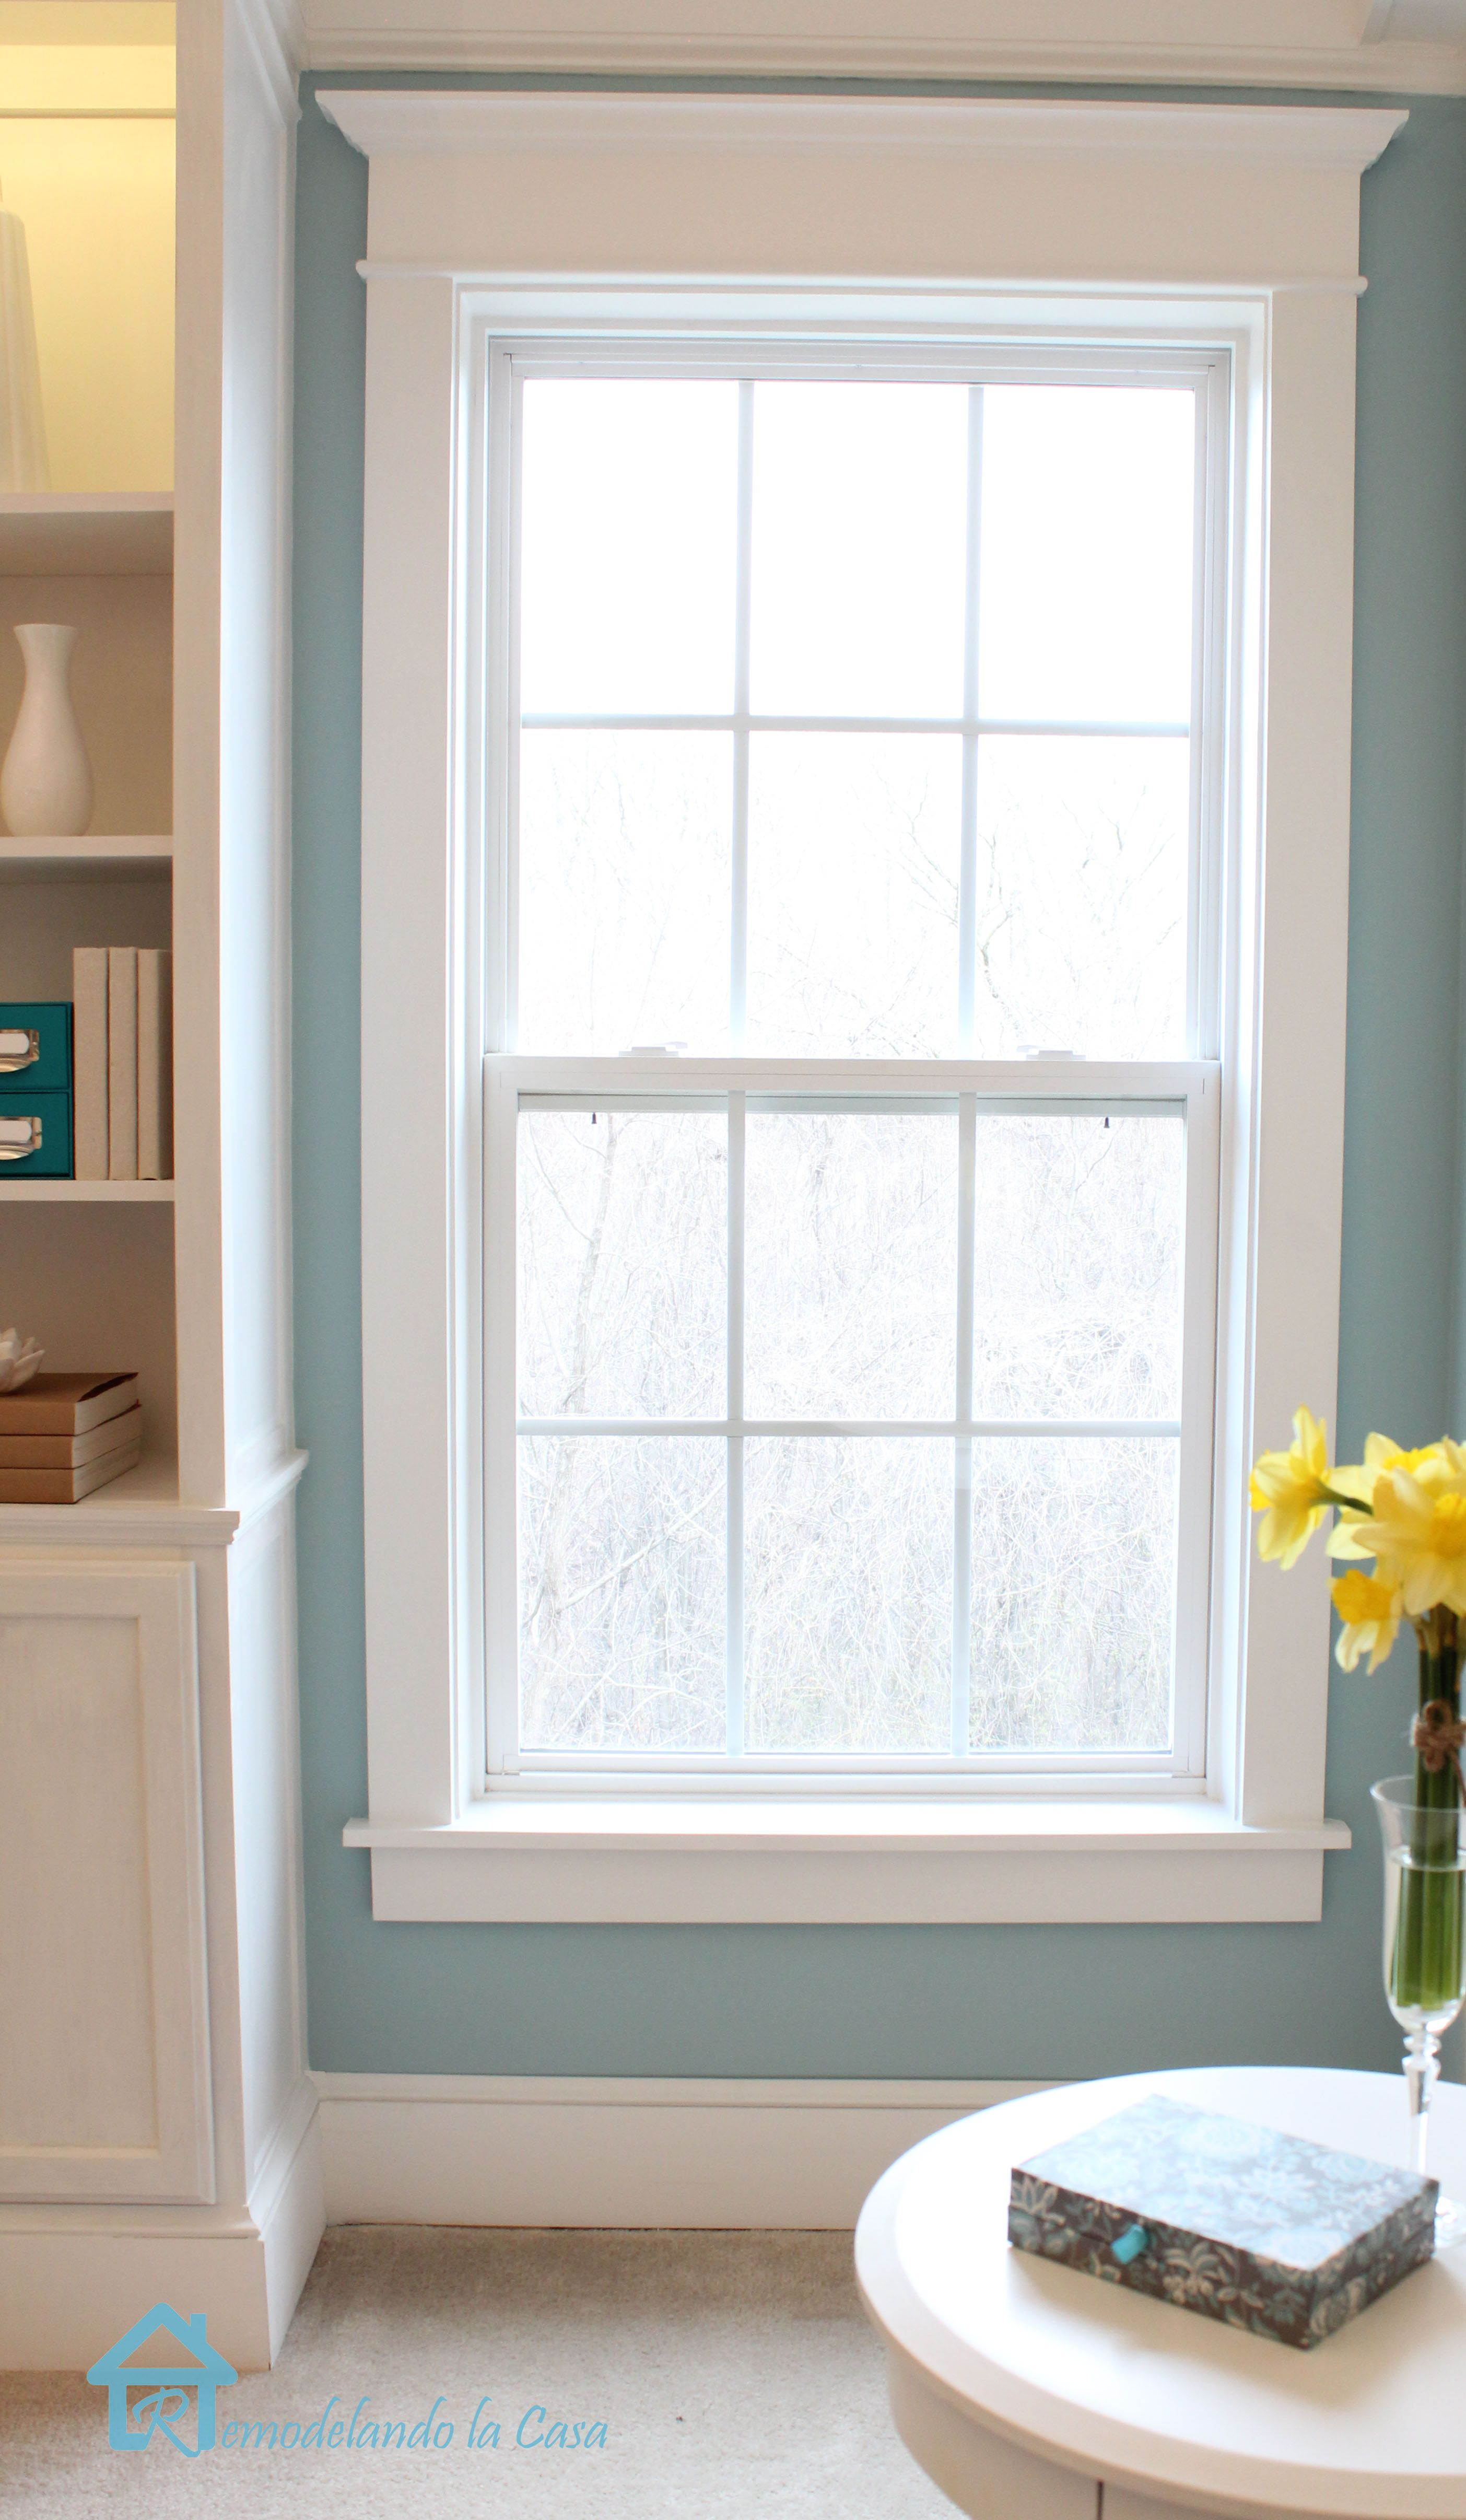 Window casing ideas  new trimmed window how to install window trim  rooms  pinterest